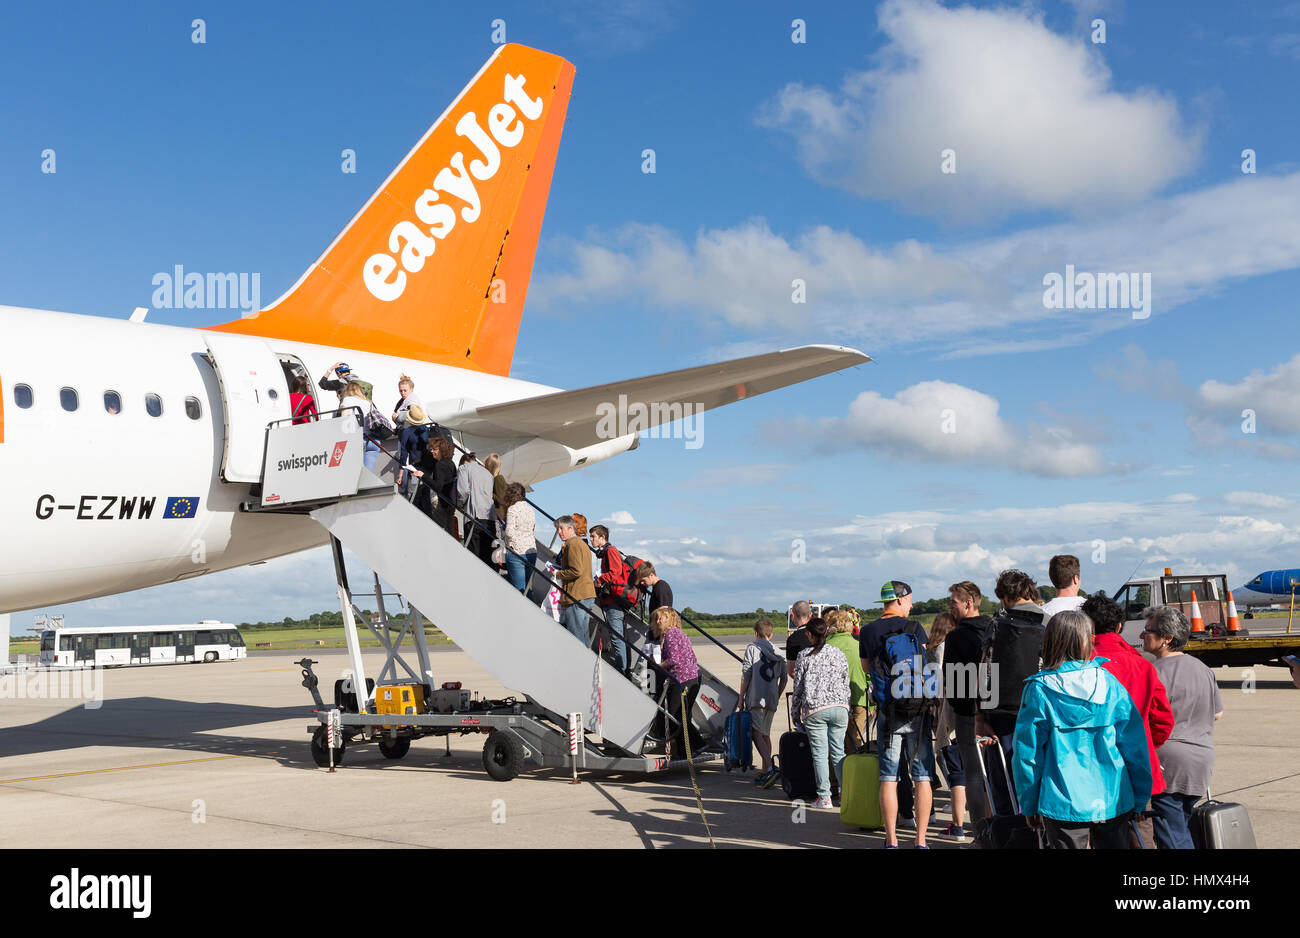 BRISTOL, UK - JULY 11, 2016: A queue of passengers boarding the tail end of an Easyjet aircraft at Bristol Airport Stock Photo